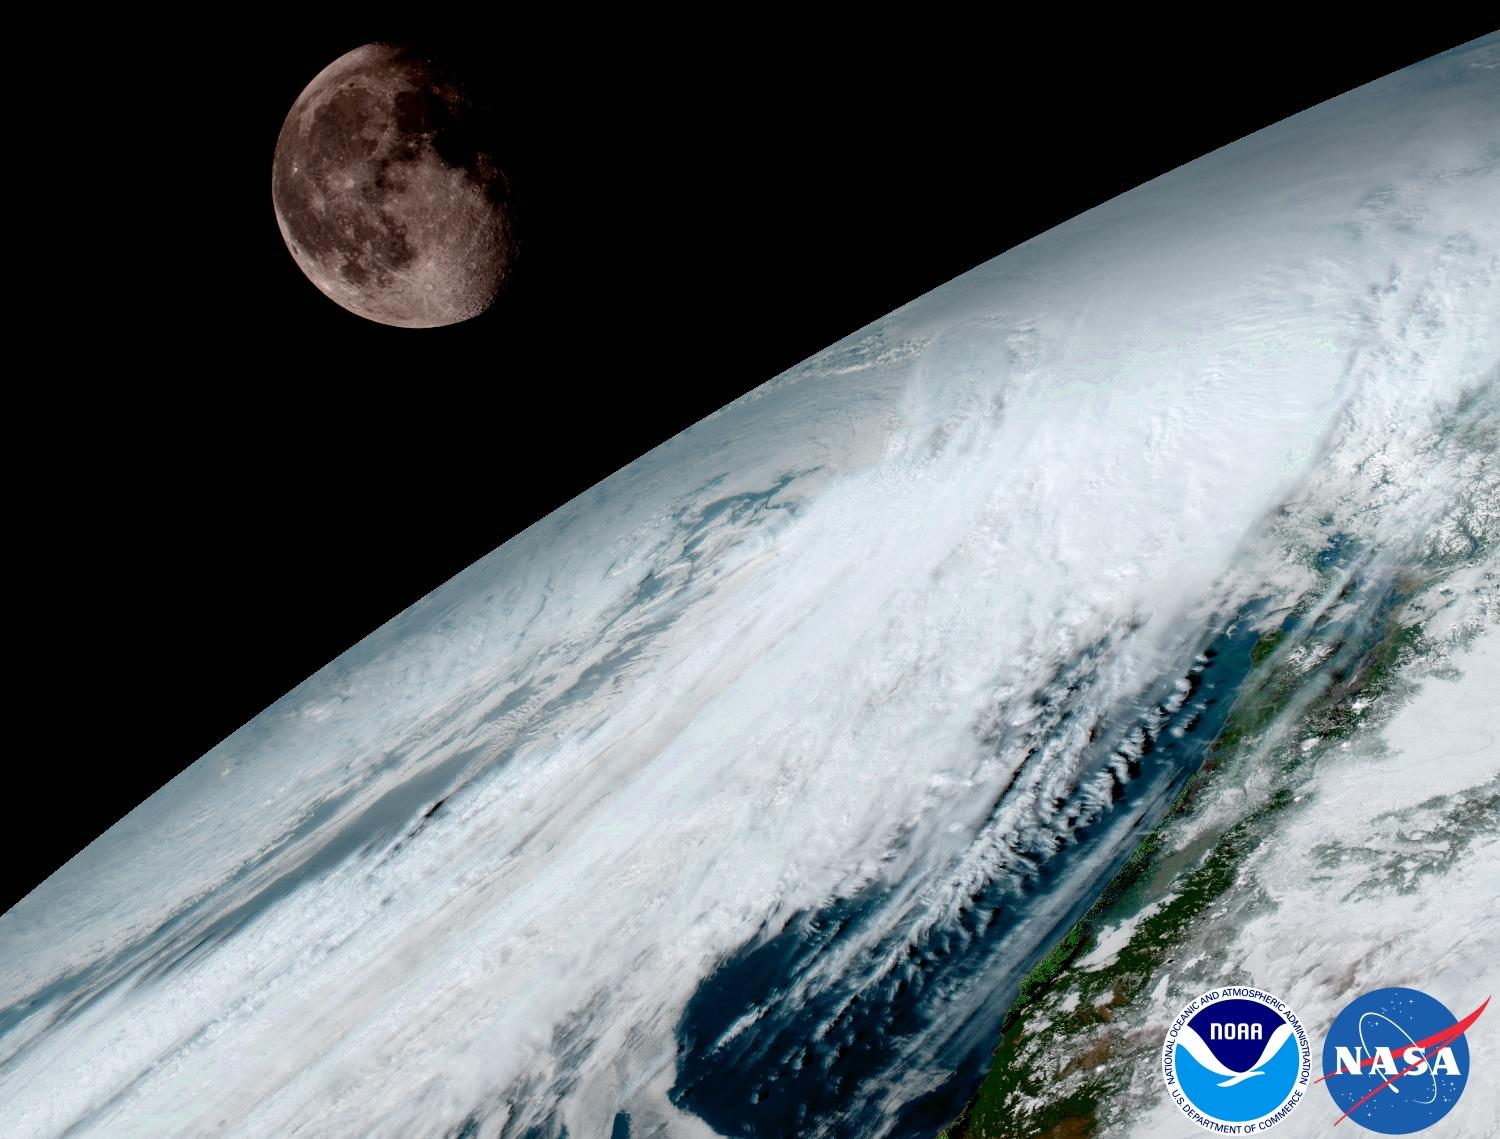 NOAA Releases Stunning Earth, Moon Pictures